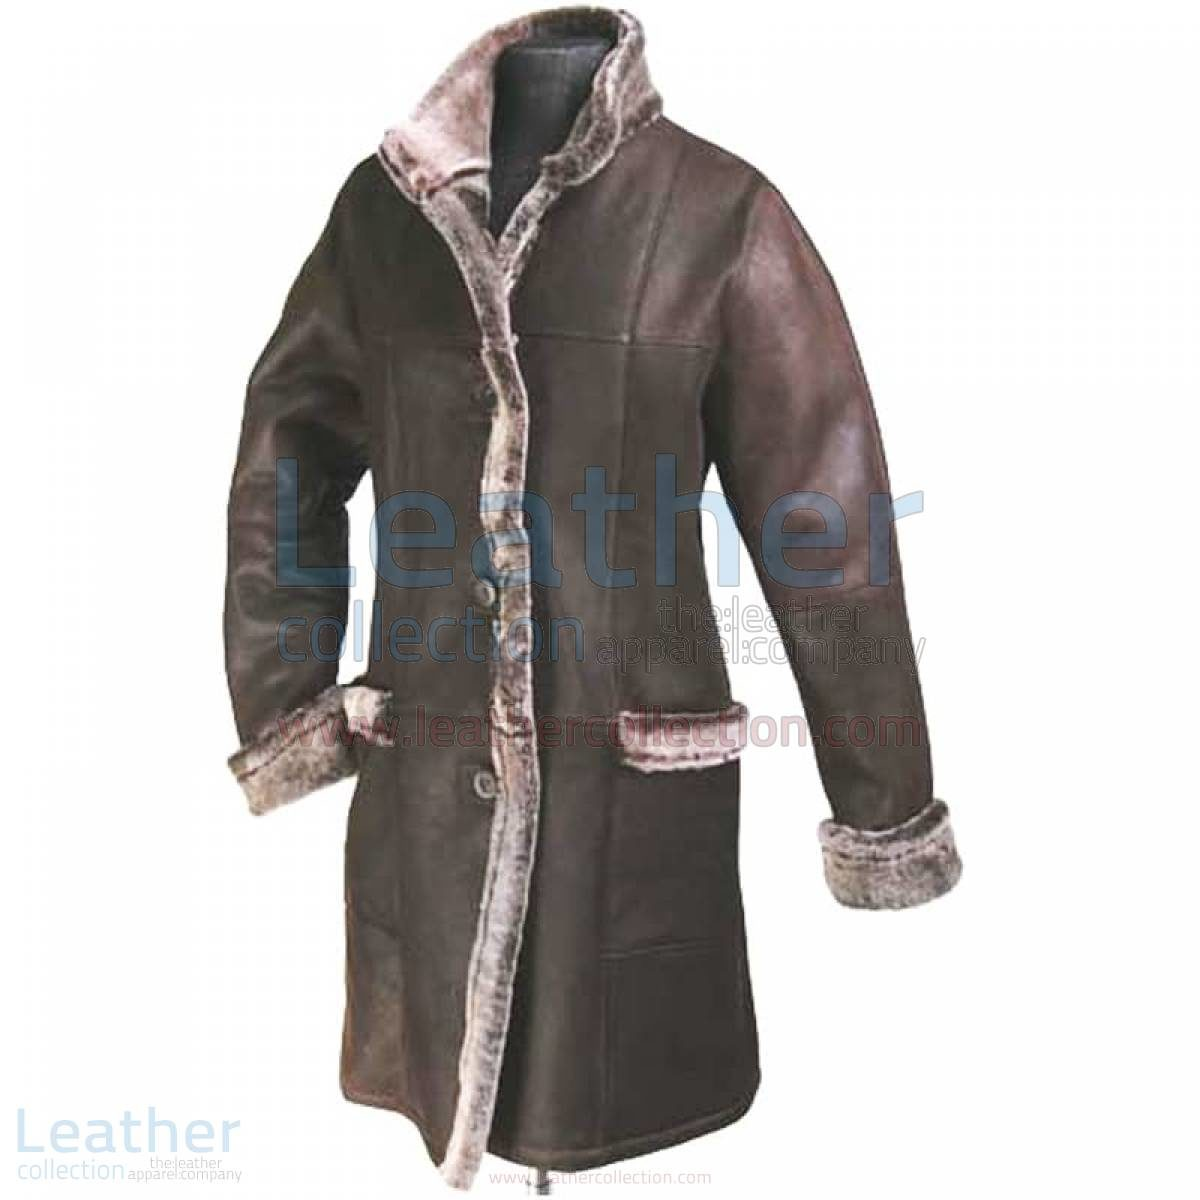 coat with fur lining